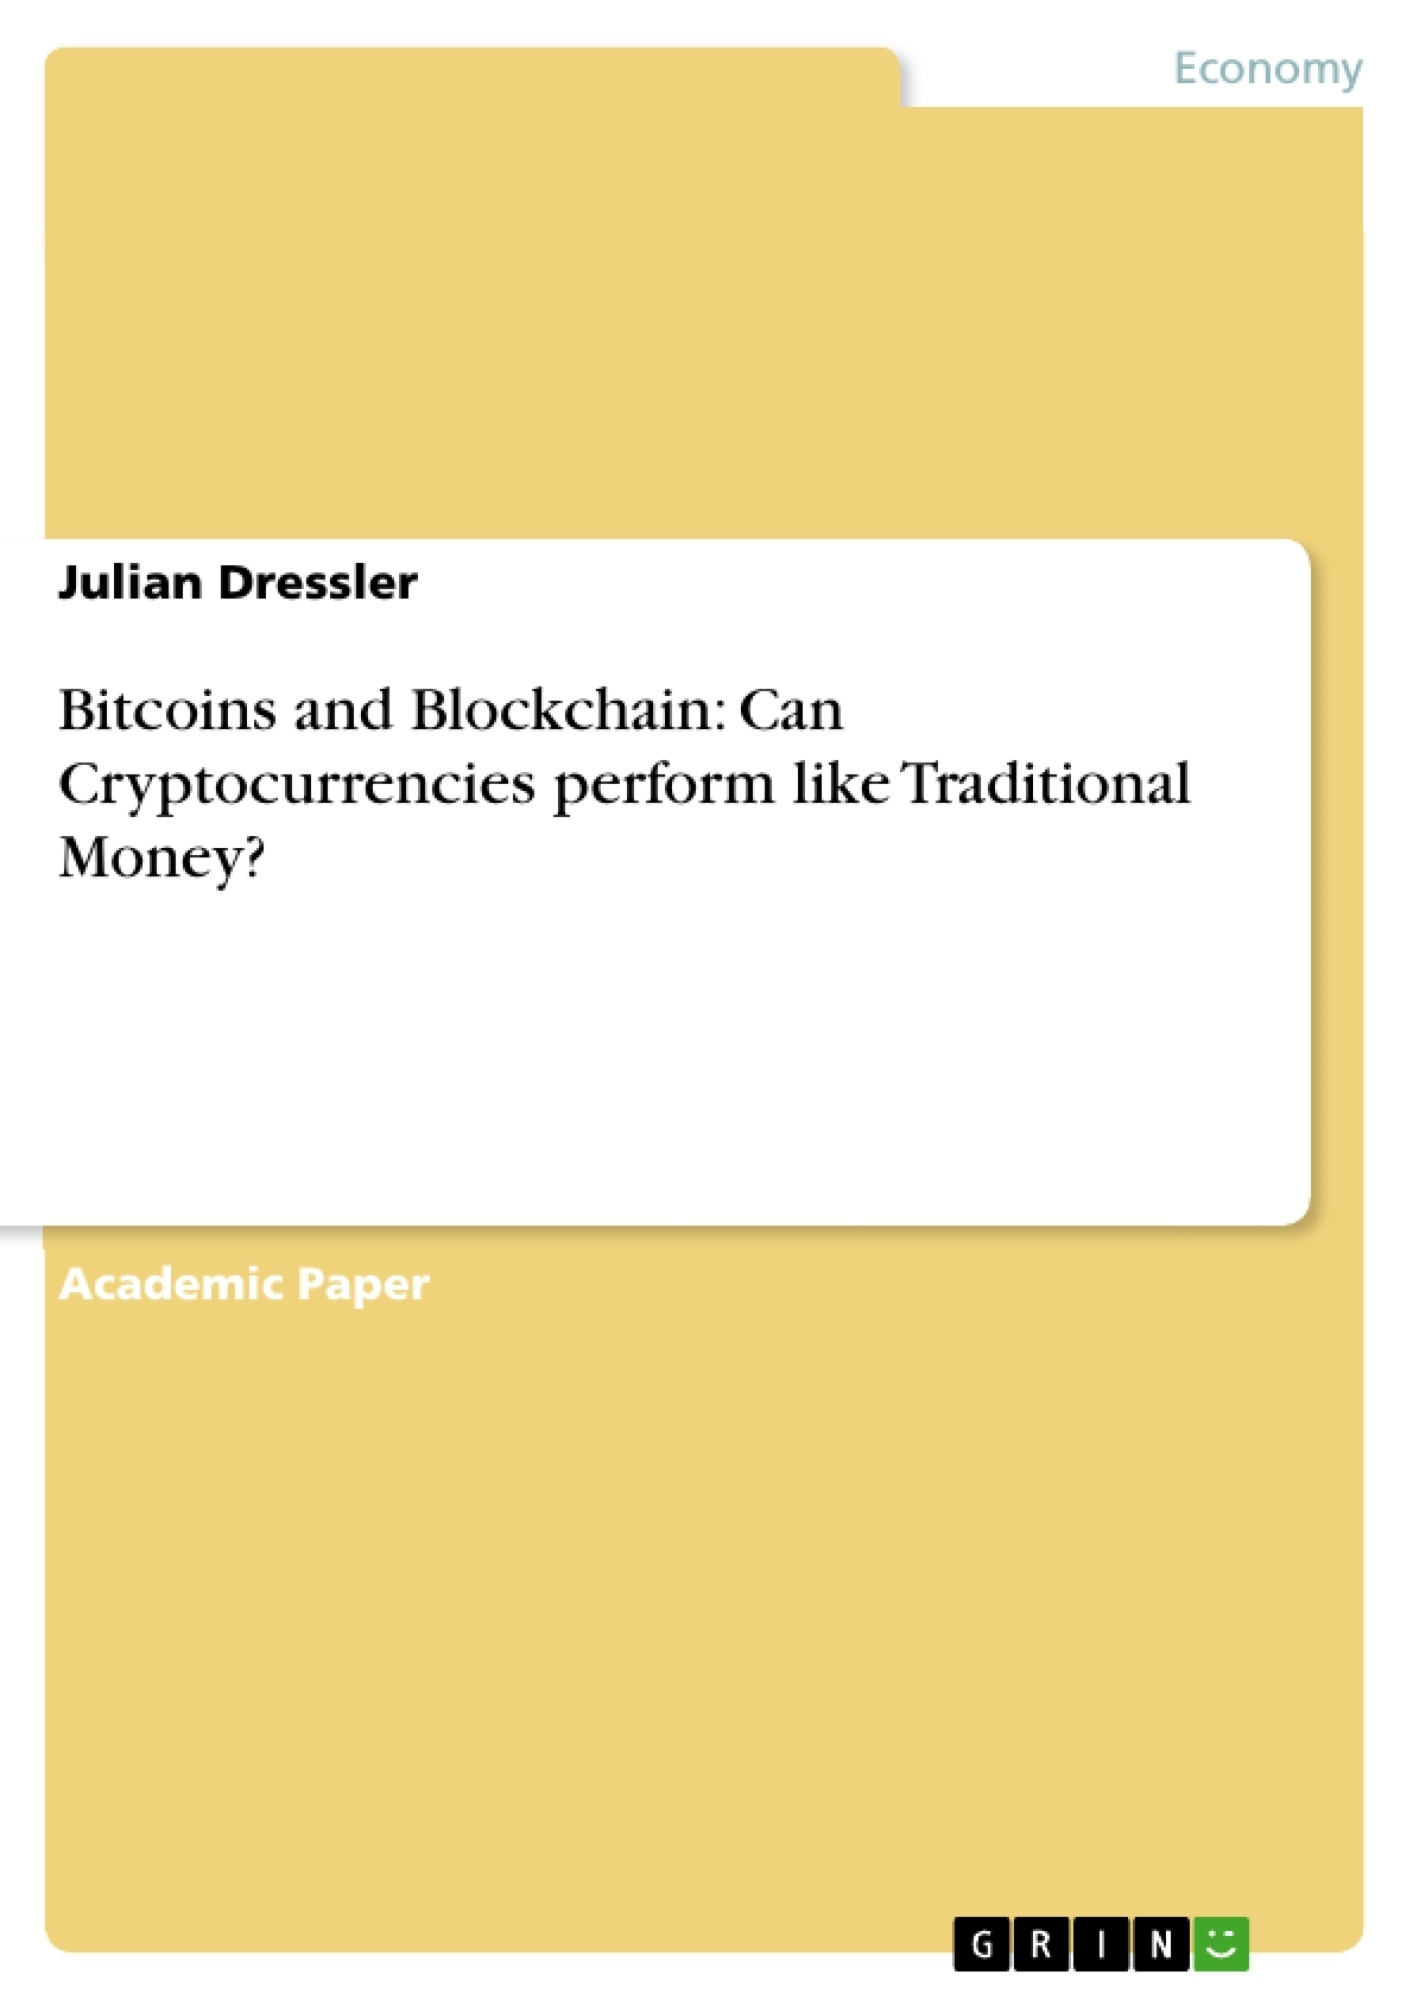 Title: Bitcoins and Blockchain: Can Cryptocurrencies perform like Traditional Money?